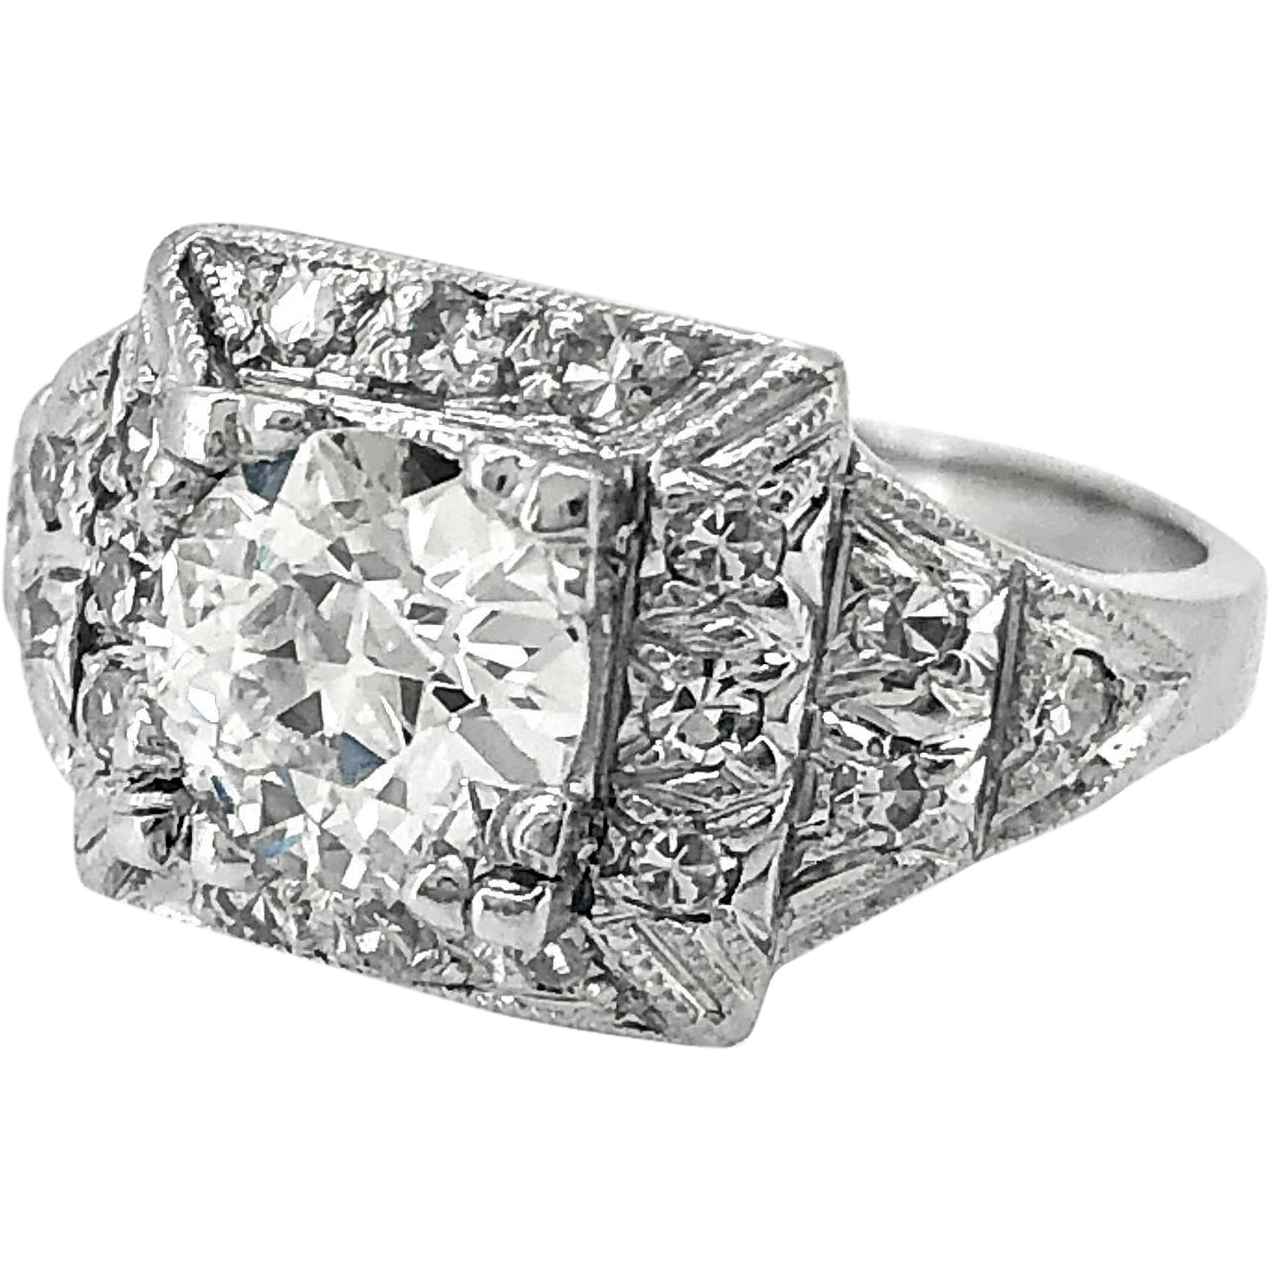 1.23ct. Diamond & Platinum Art Deco Engagement Ring - J35240